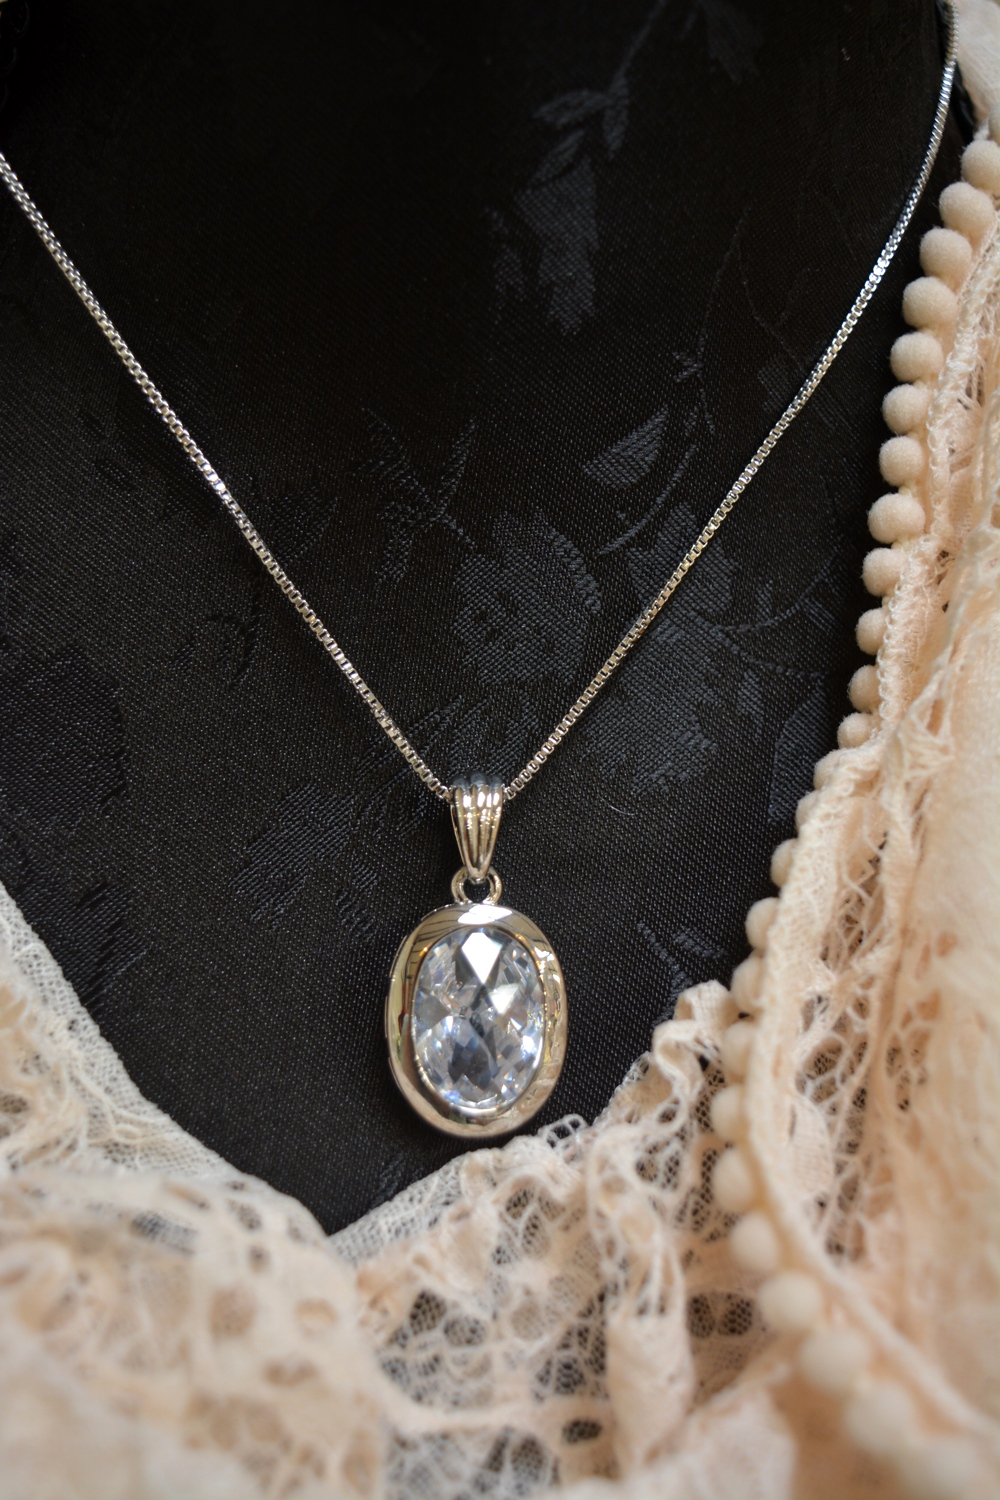 Oval Sparkle Necklace ~ €15.00